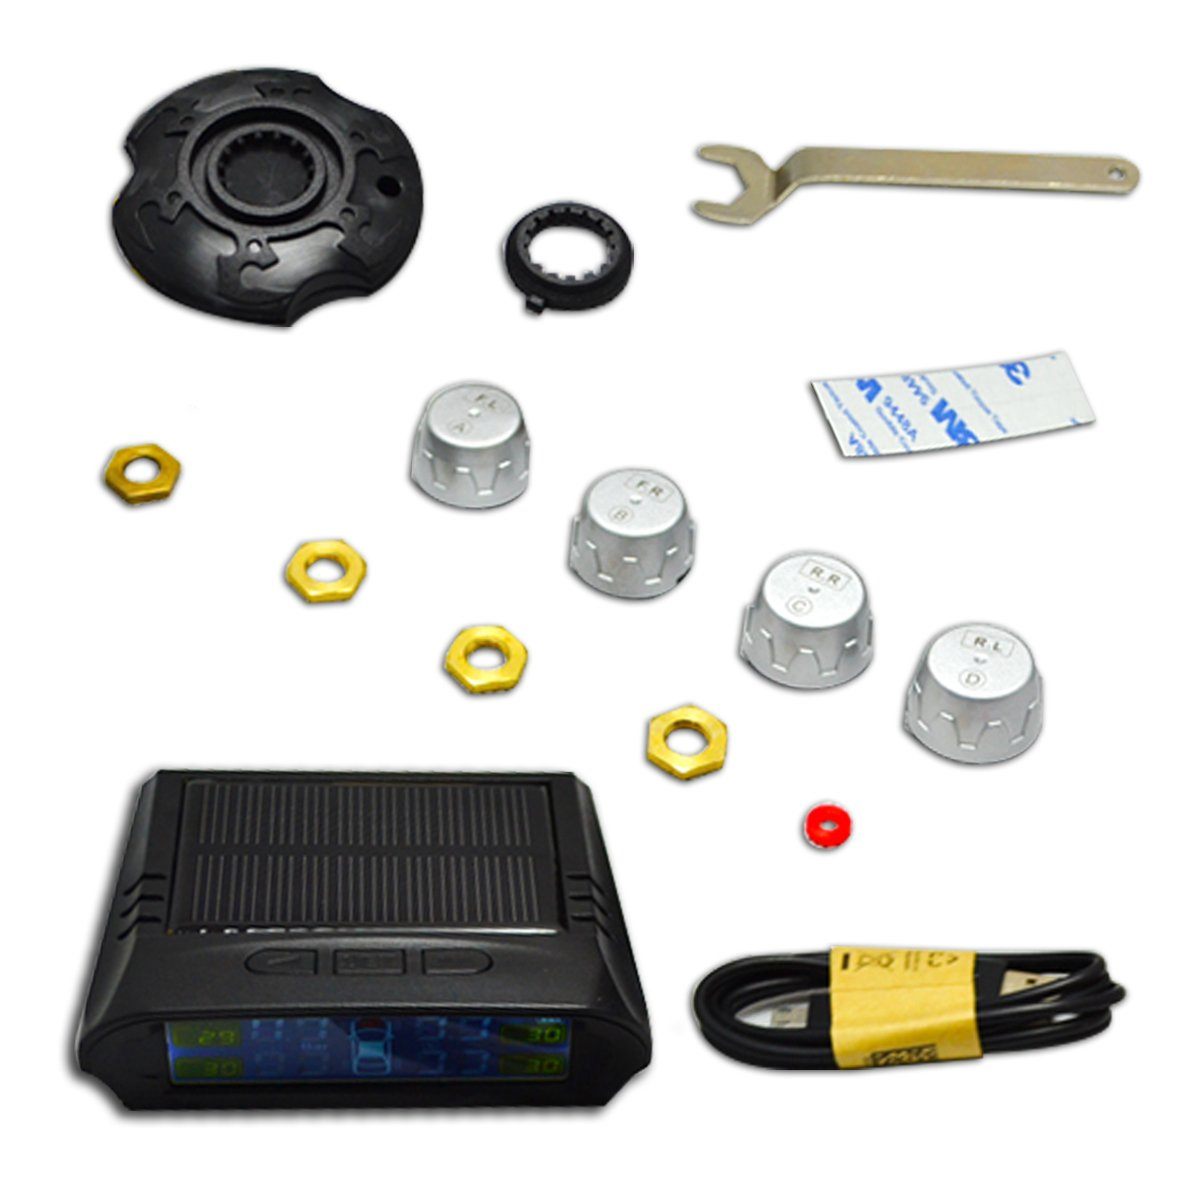 Meirun Solar Power Tpms Tire Pressure Monitoring System,Digital Wireless LCD Display TPMS Alarm System with 4 External Sensors for Home Car Tires and Semi Truck by Meirun (Image #2)